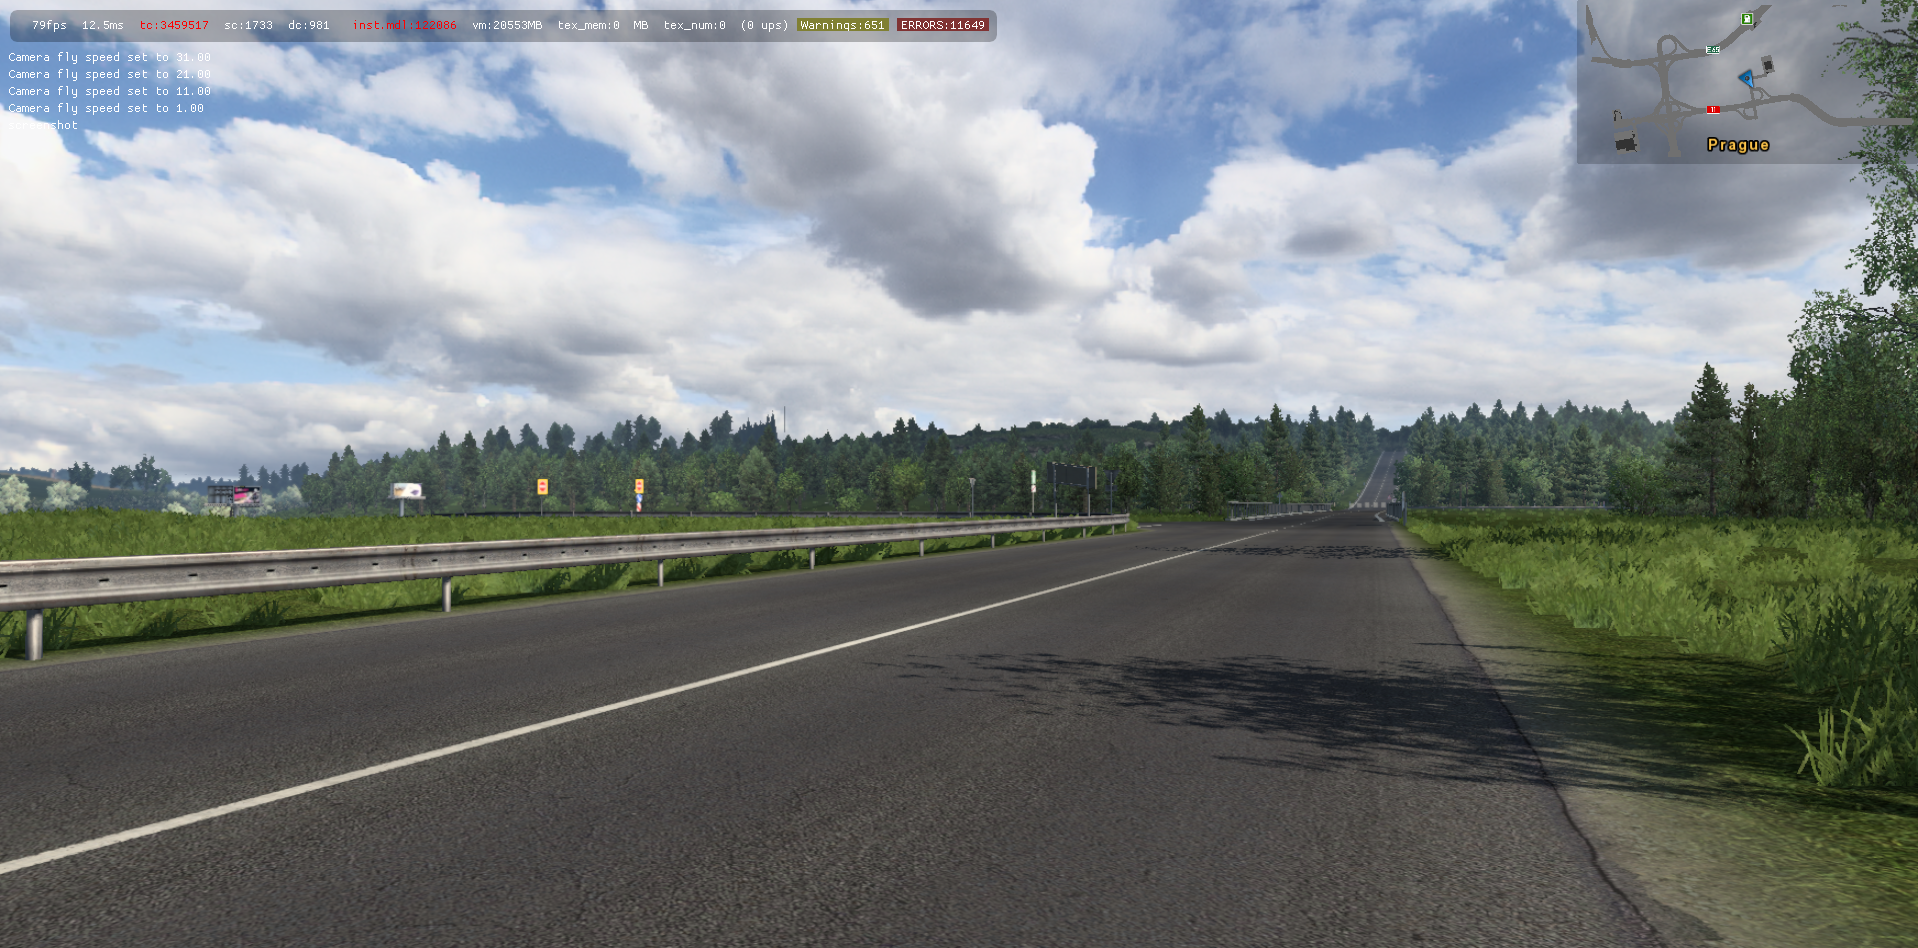 ets2_20210531_203059_00.png